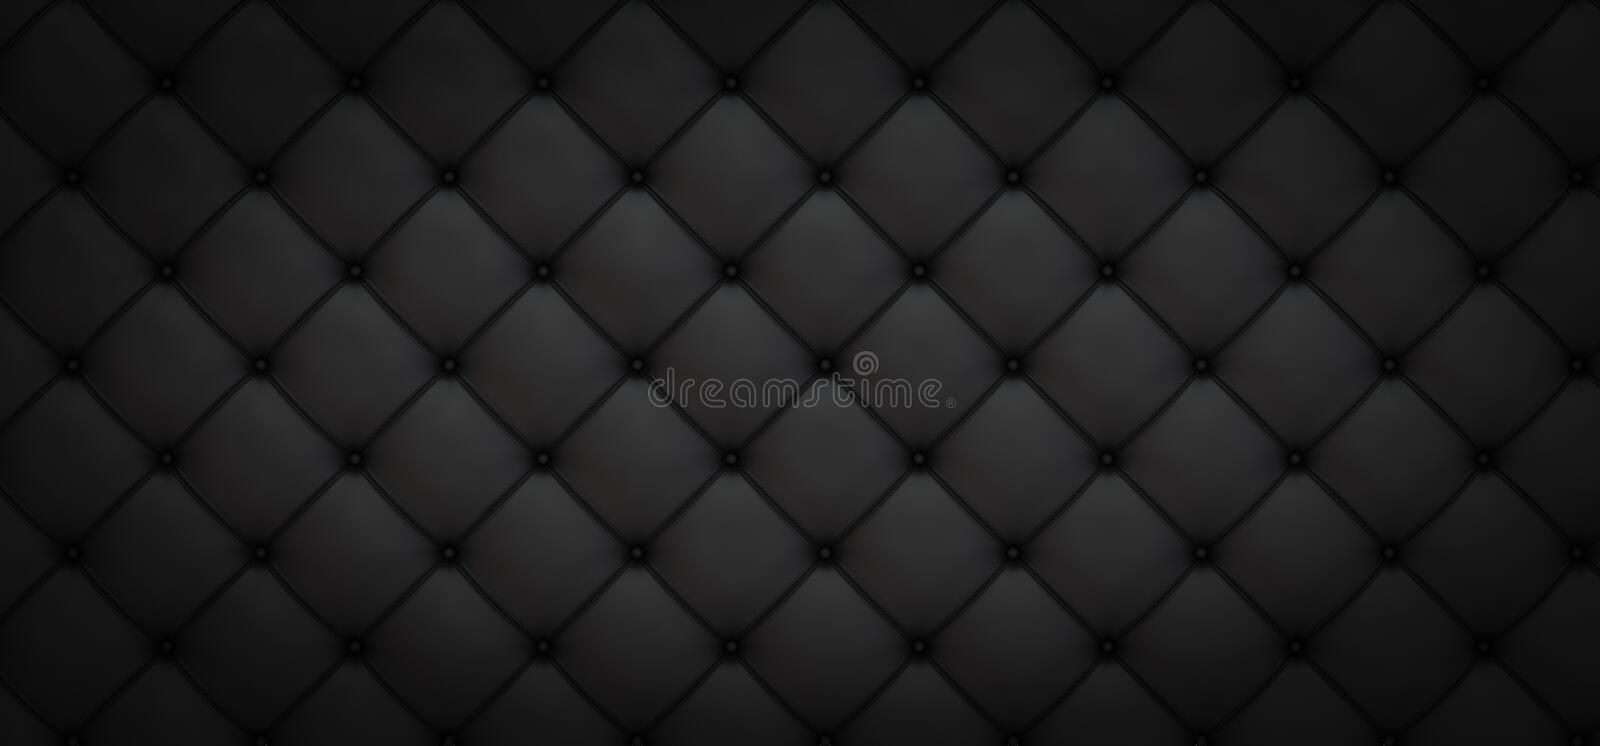 Black background of elongated rhombuses with buttons - 3D illustration stock illustration